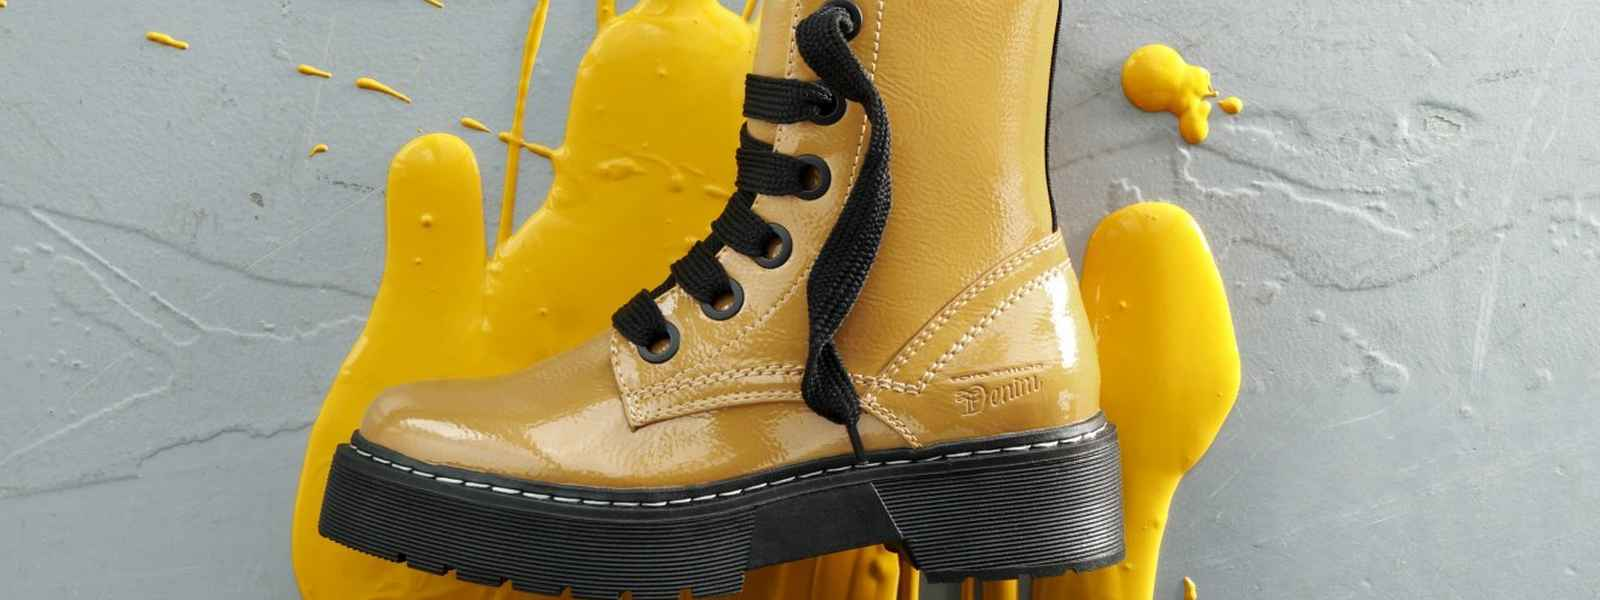 Trend: Yellow Shoes